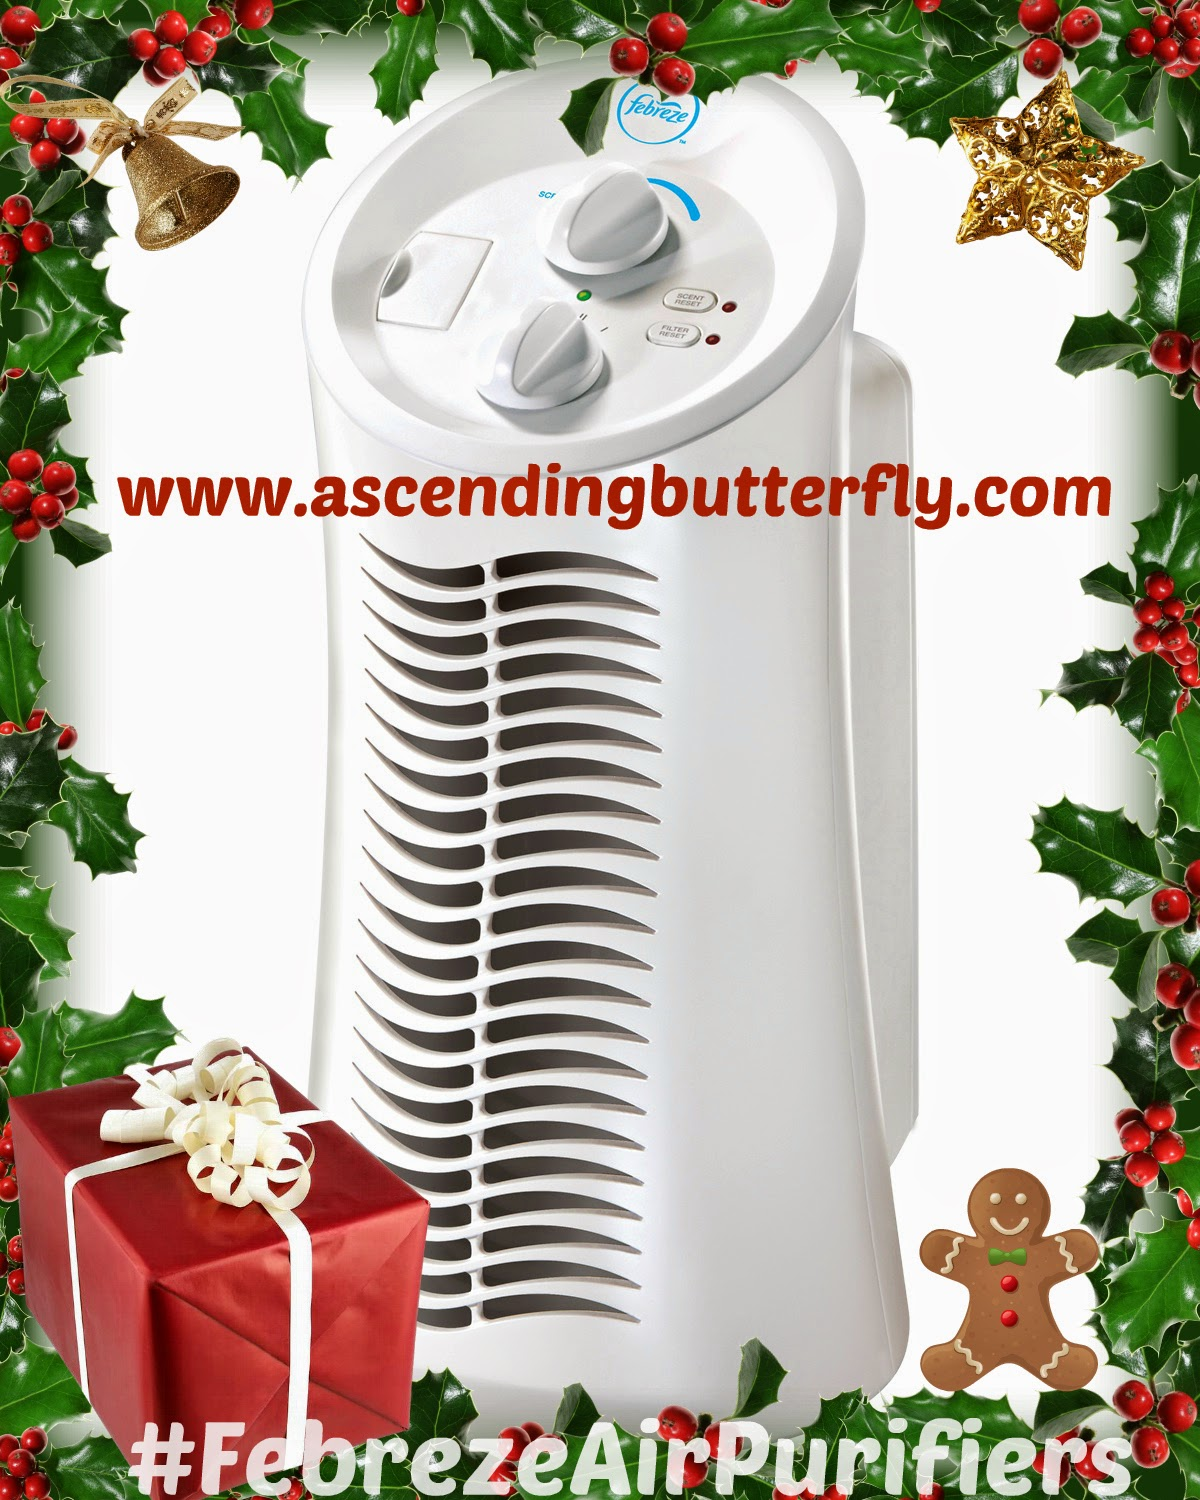 FHT180W Mini Tower HEPA-Type Air Purifier, Febreze™ Air Purifiers